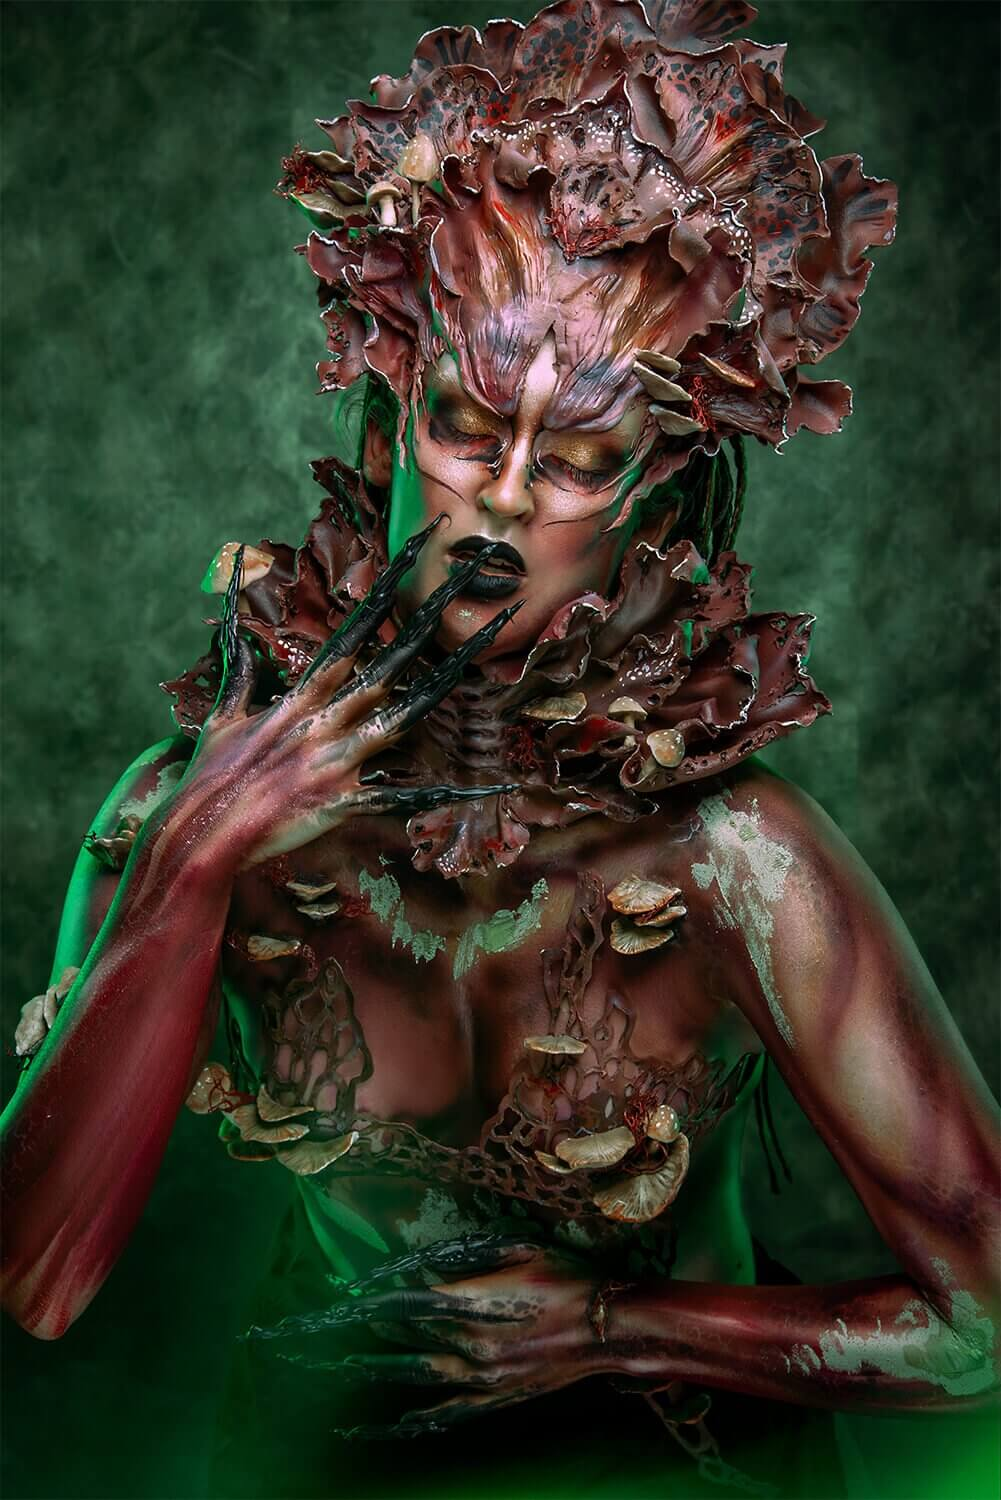 forest Nymph costume - candy makeup artist